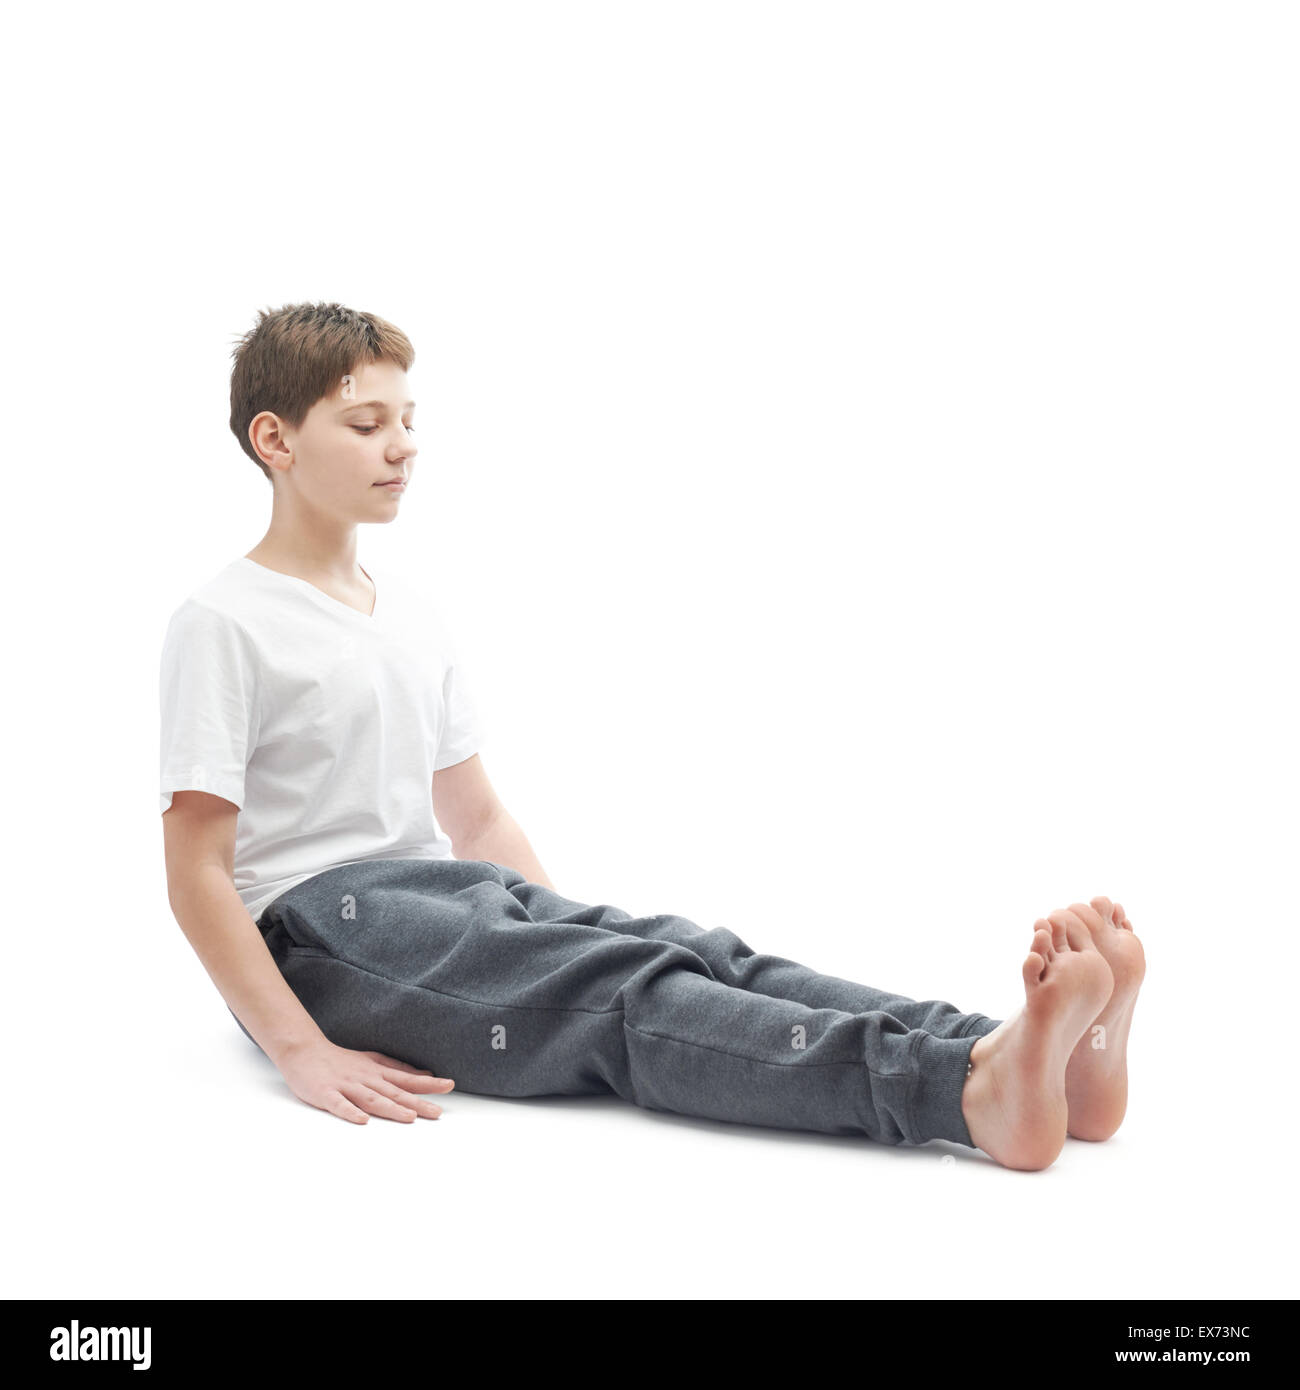 Young boy stretching or doing yoga - Stock Image